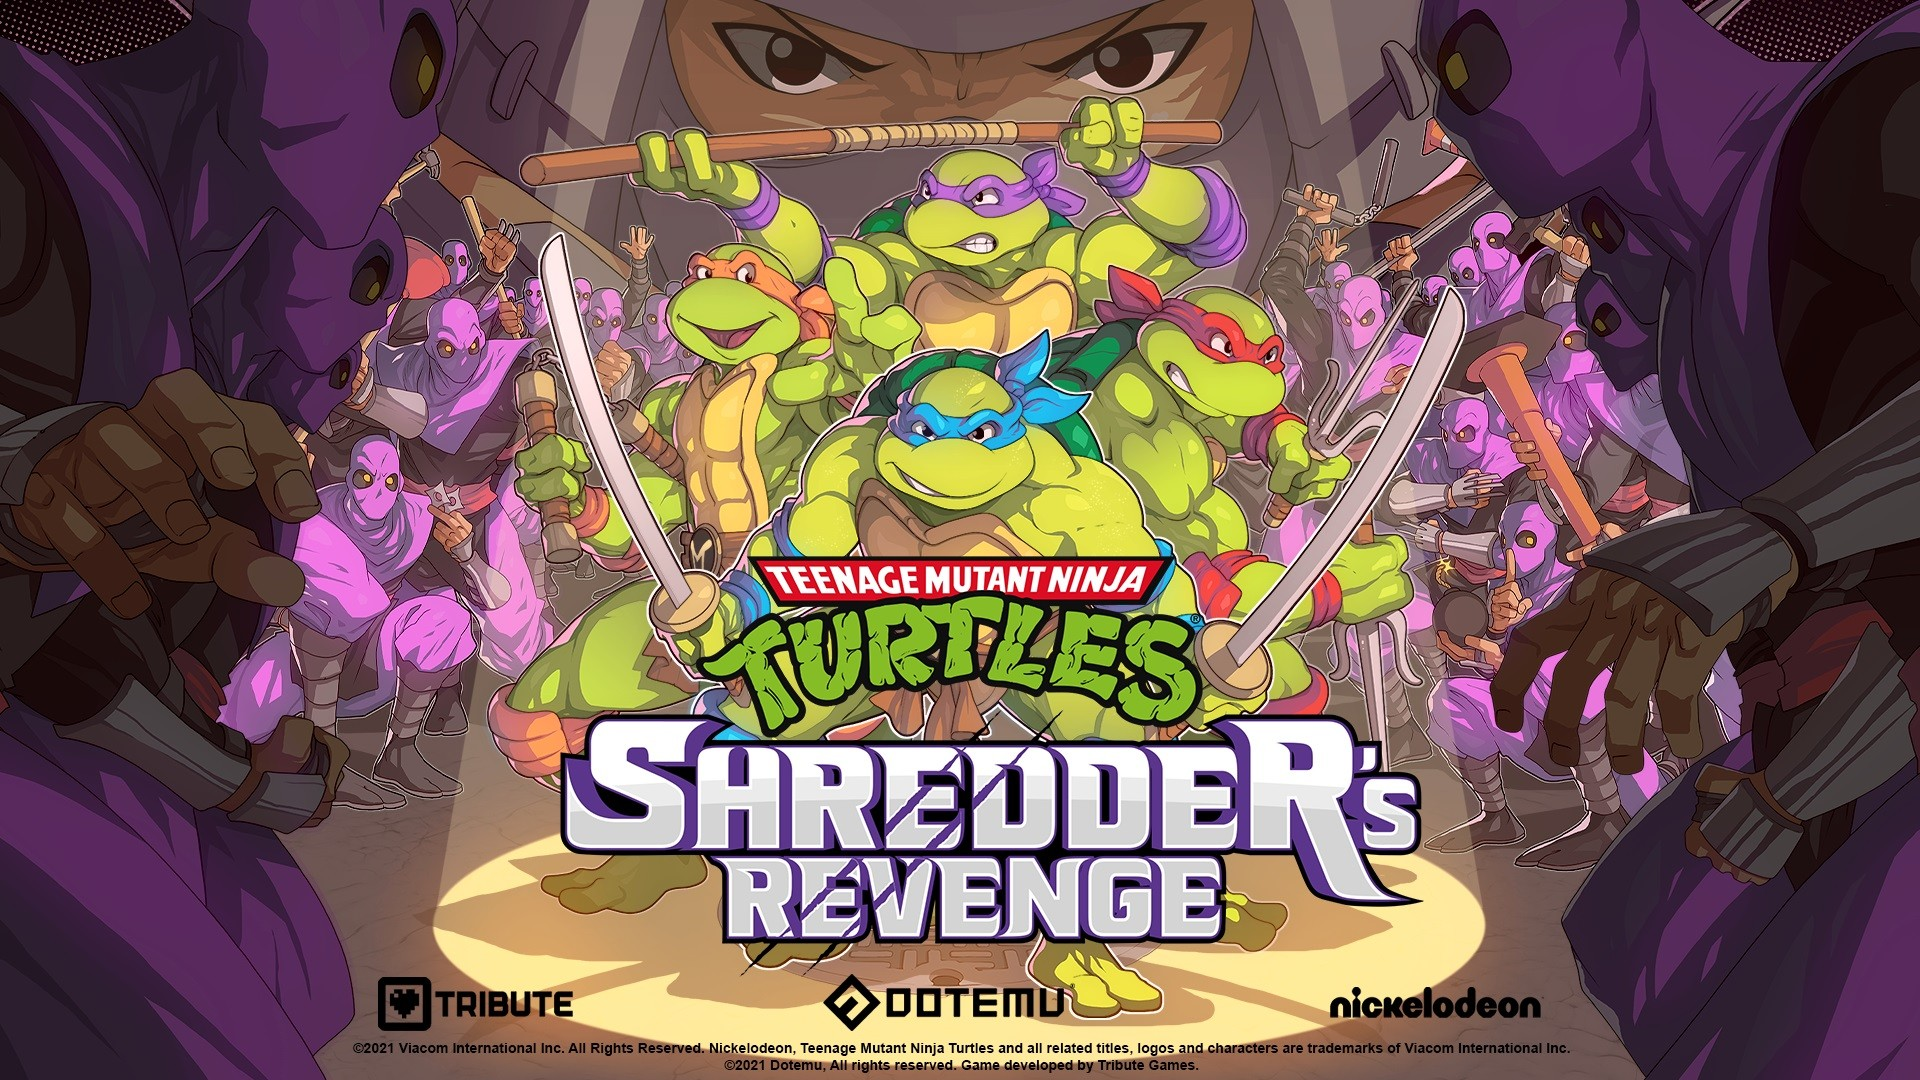 Teenage Mutant Ninja Turtles : Shredder's Revenge, un nouveau jeu Tortues Ninja à venir